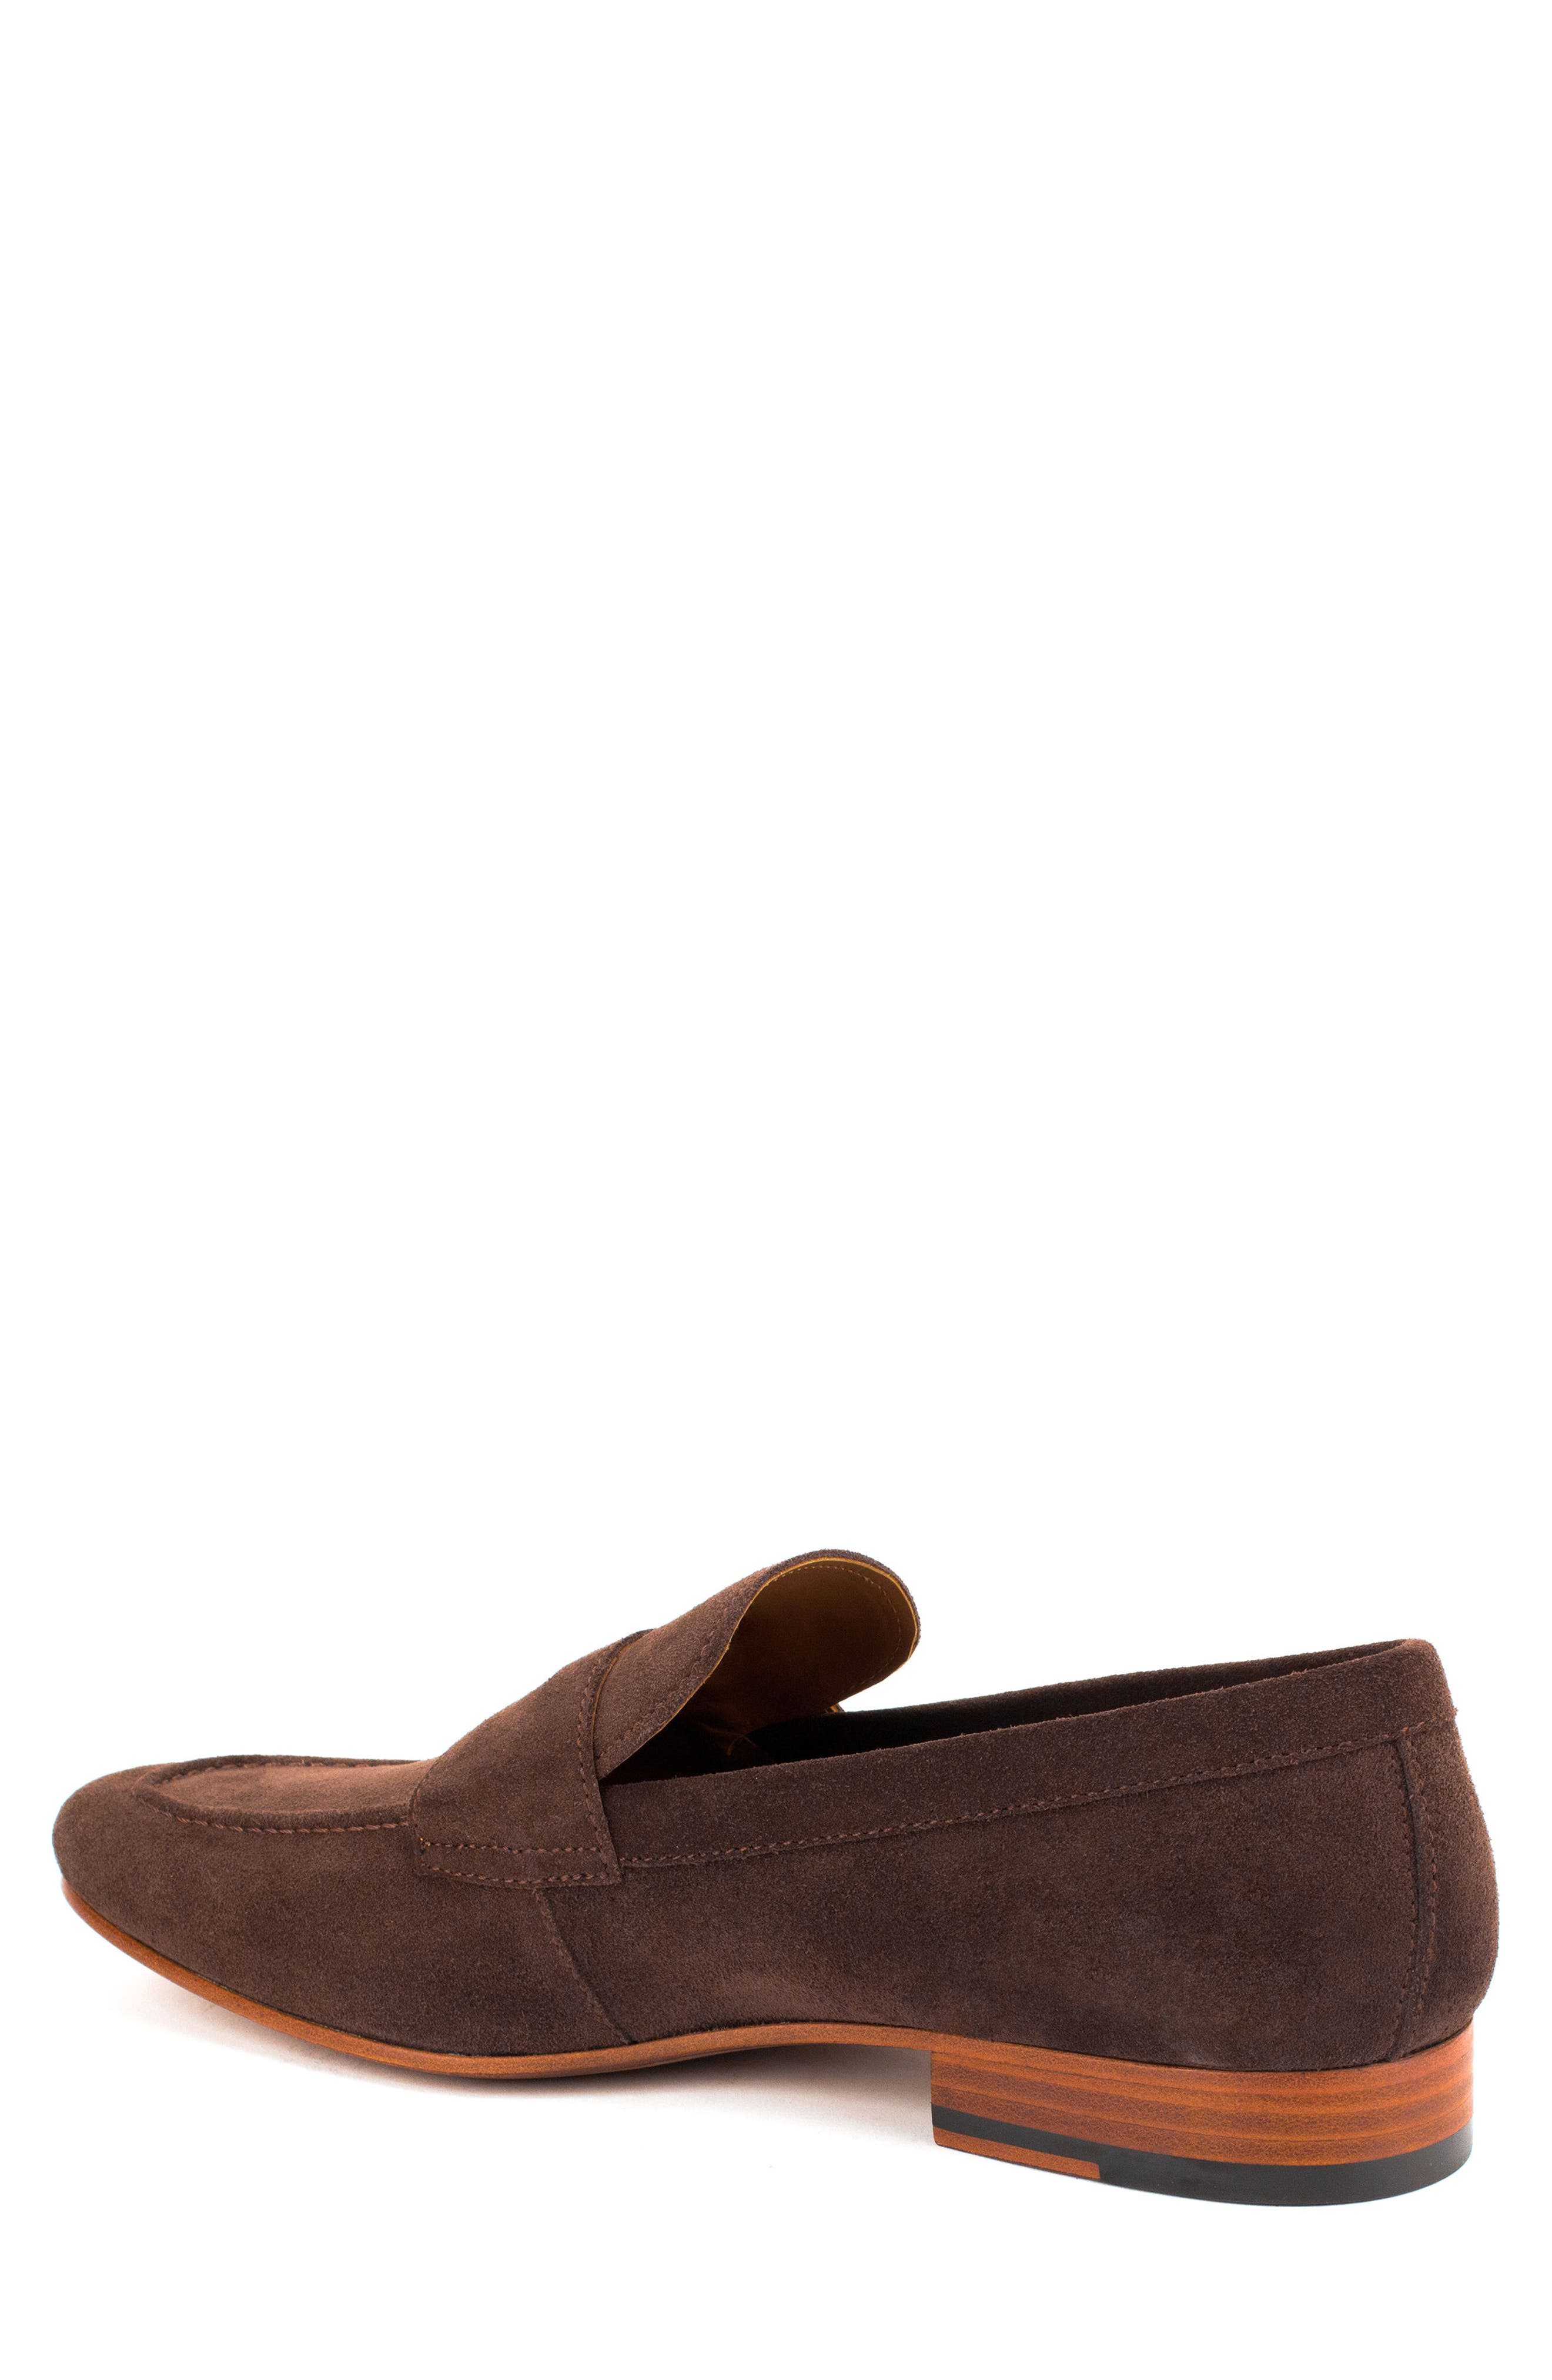 Wilfred Penny Loafer,                             Alternate thumbnail 2, color,                             206